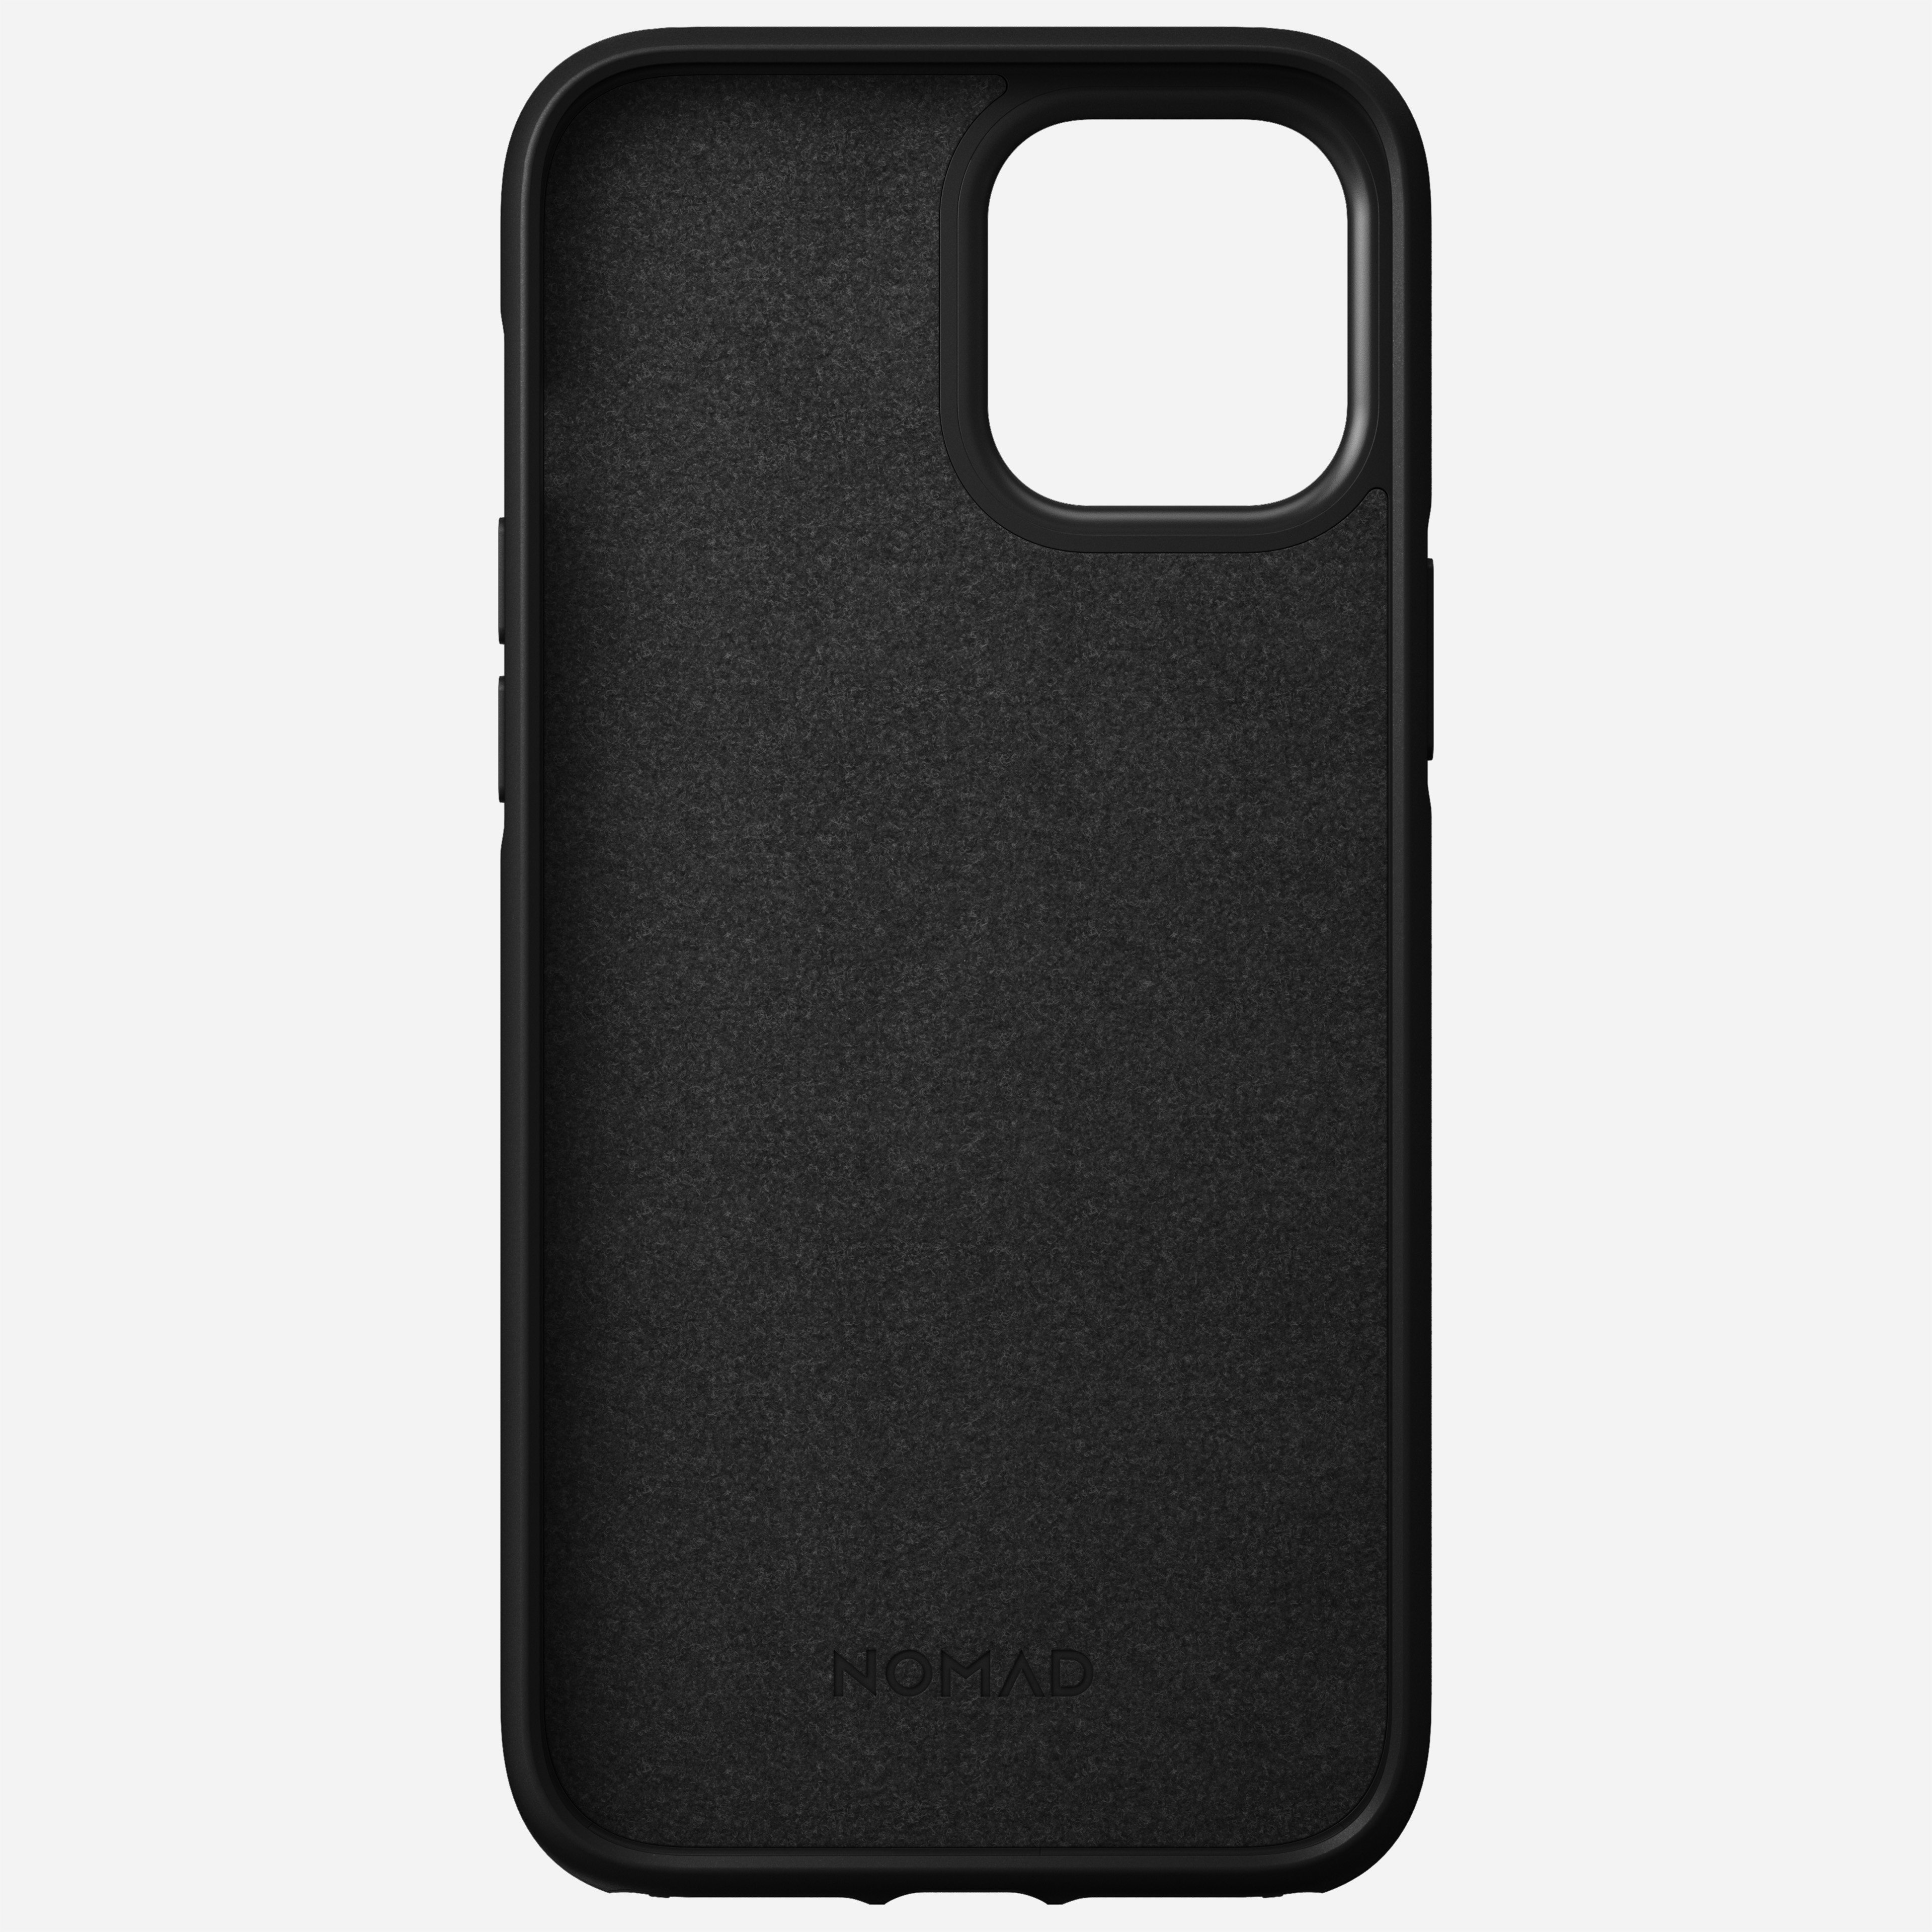 Rugged case horween leather black iphone 12 pro max